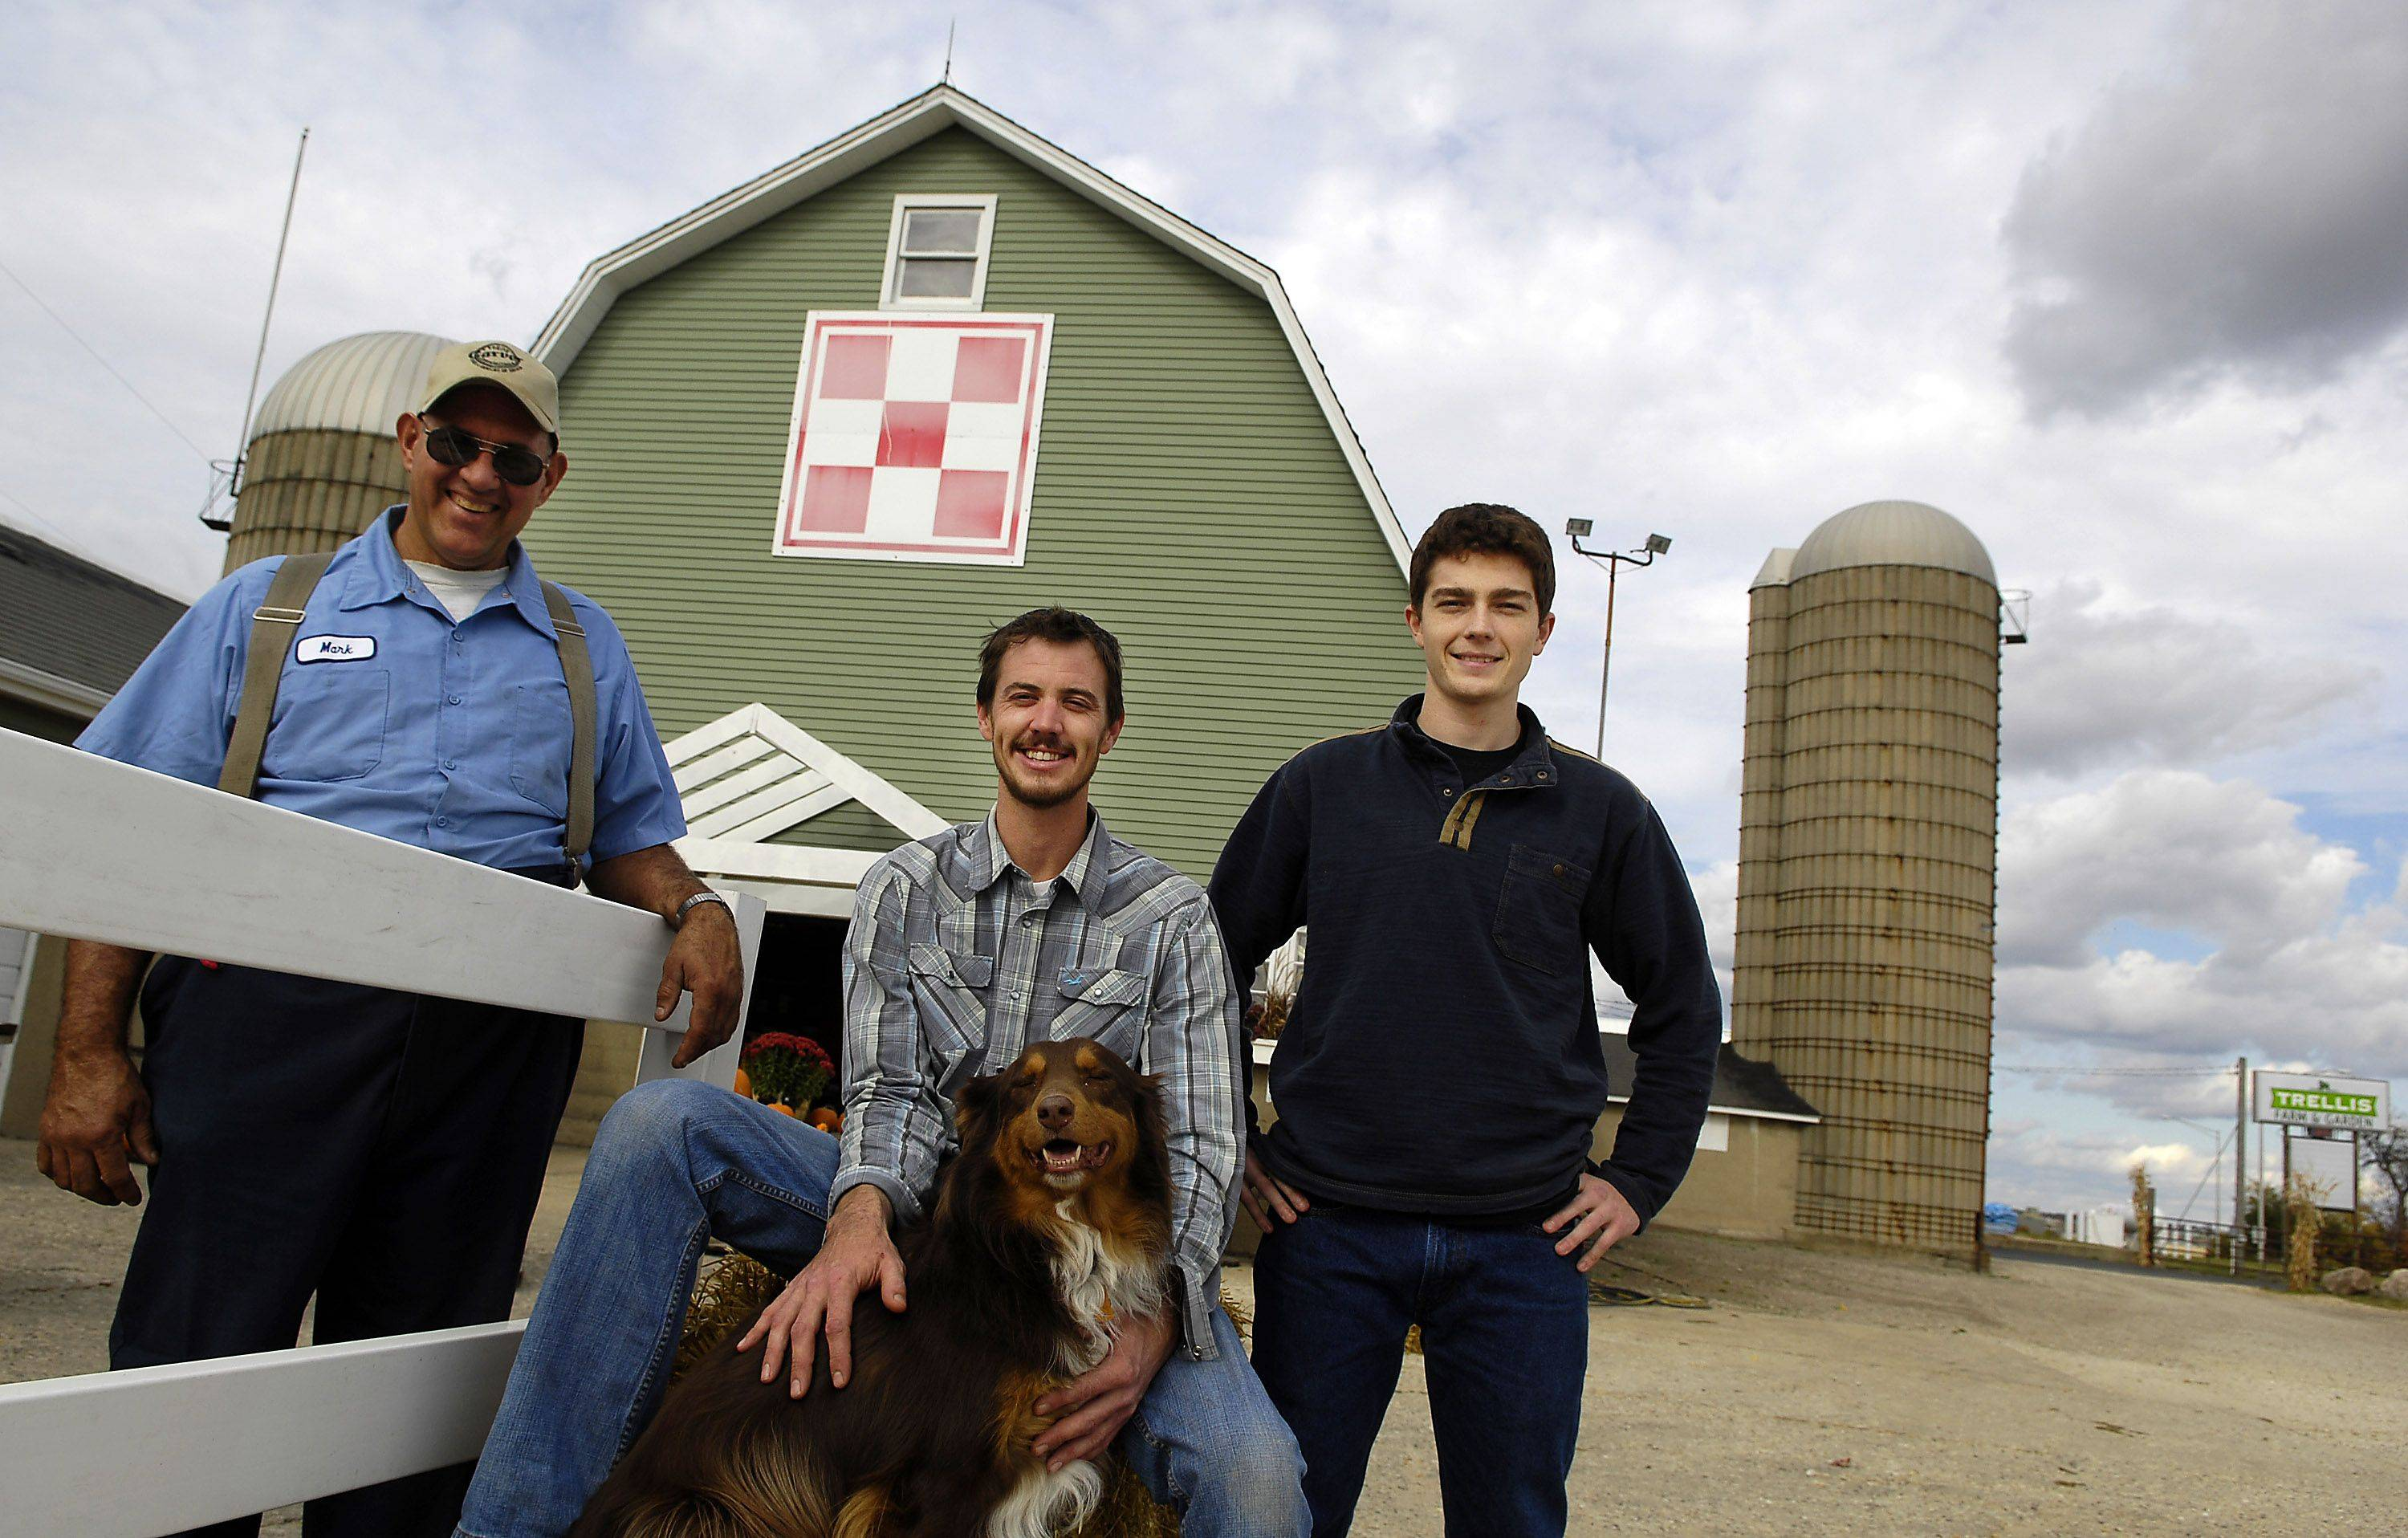 Tom Stopka, center, and his family have opened Trellis Farm and Garden in the former location of the Regole's Harvest Shoppe in St. Charles. He's joined in the photo by Trellis employees Colton Schuetz, right, and Mark Regole, whose family still owns the property.